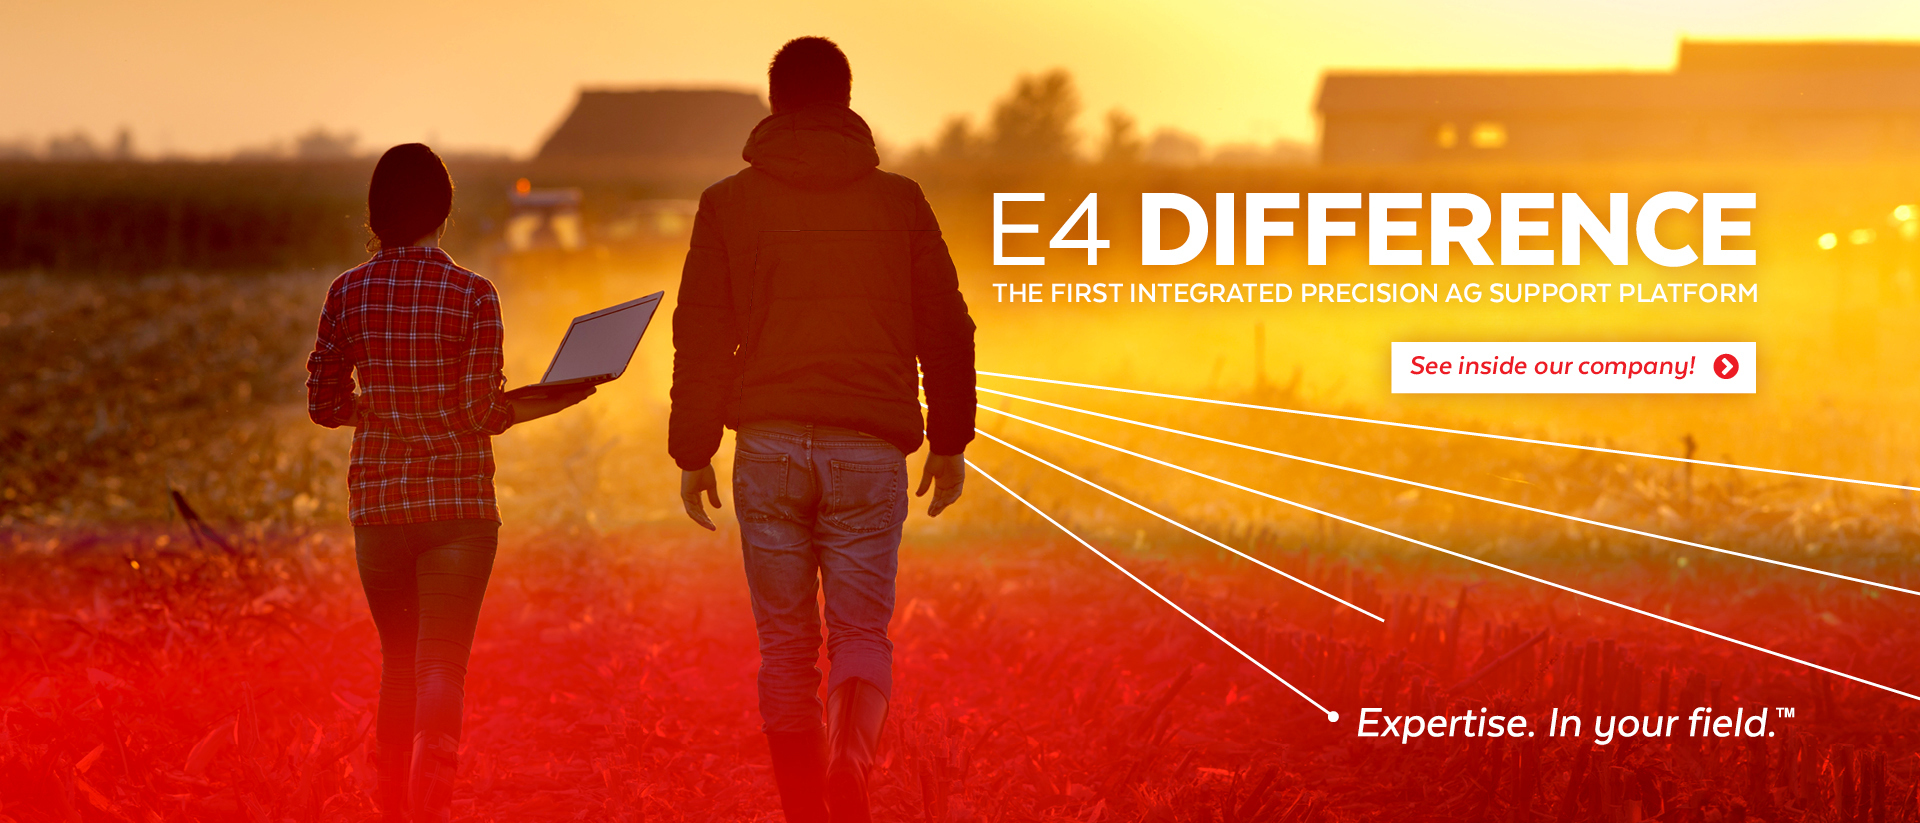 E4 Difference | The First Intergrated Precision AG Support Platform